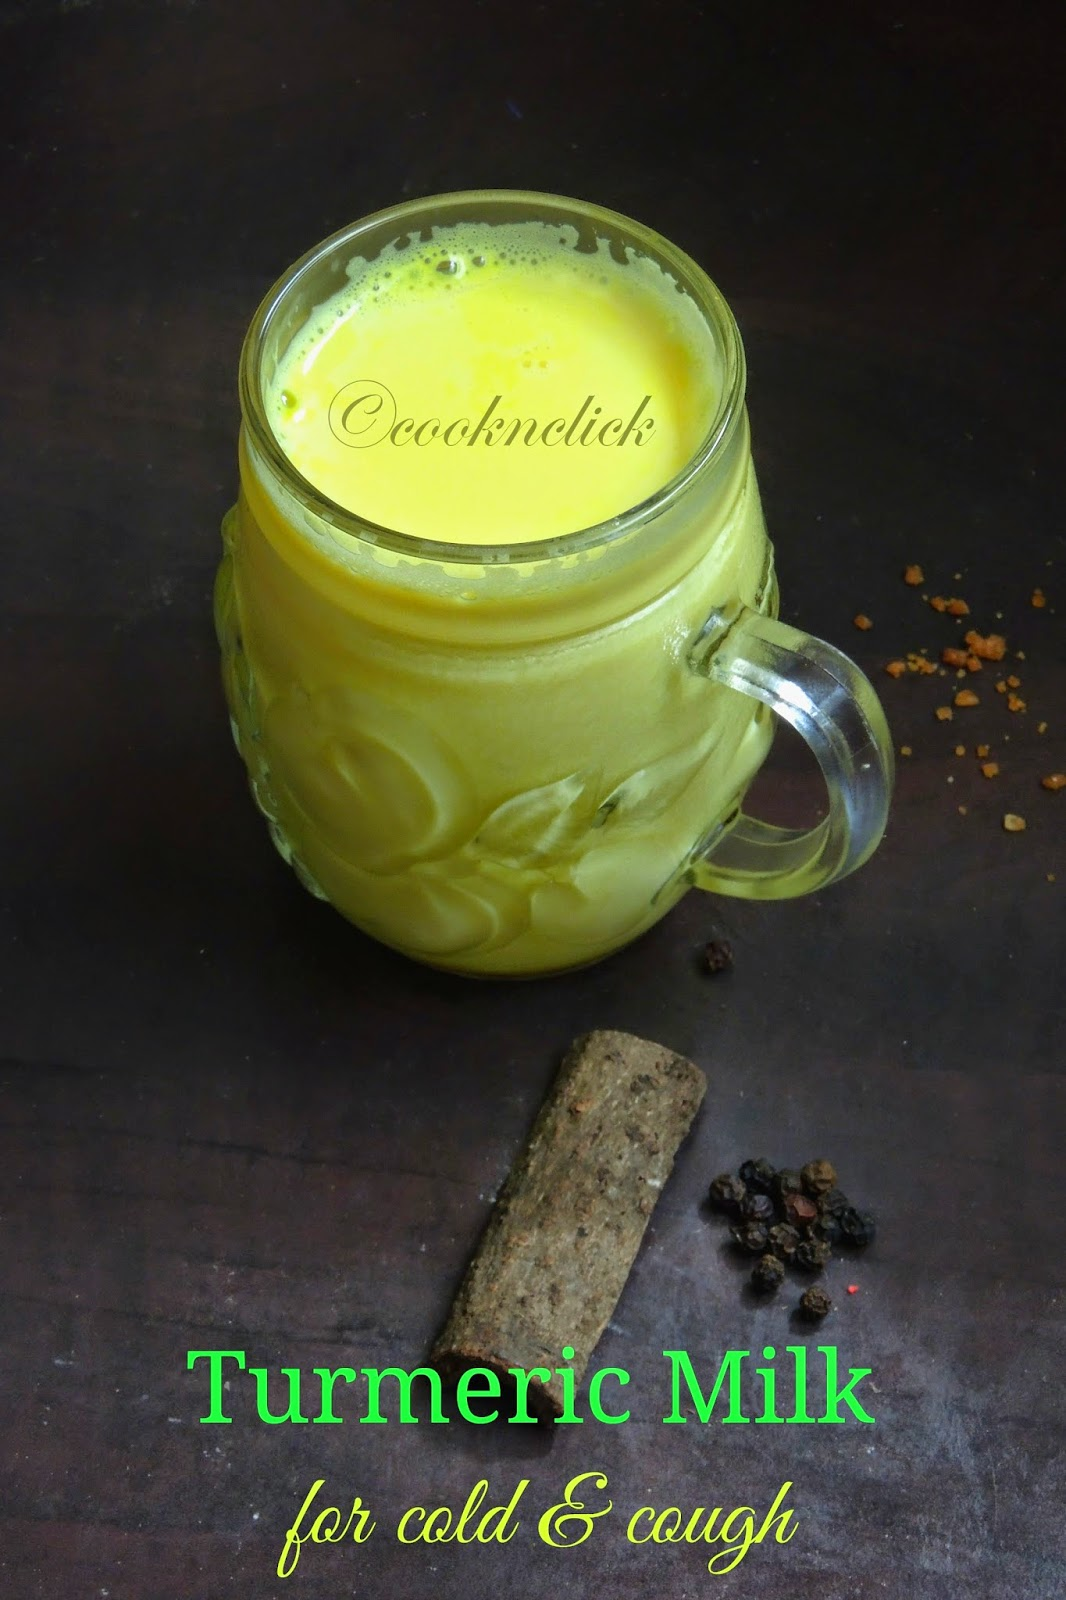 Turmeric milk for cold and cough